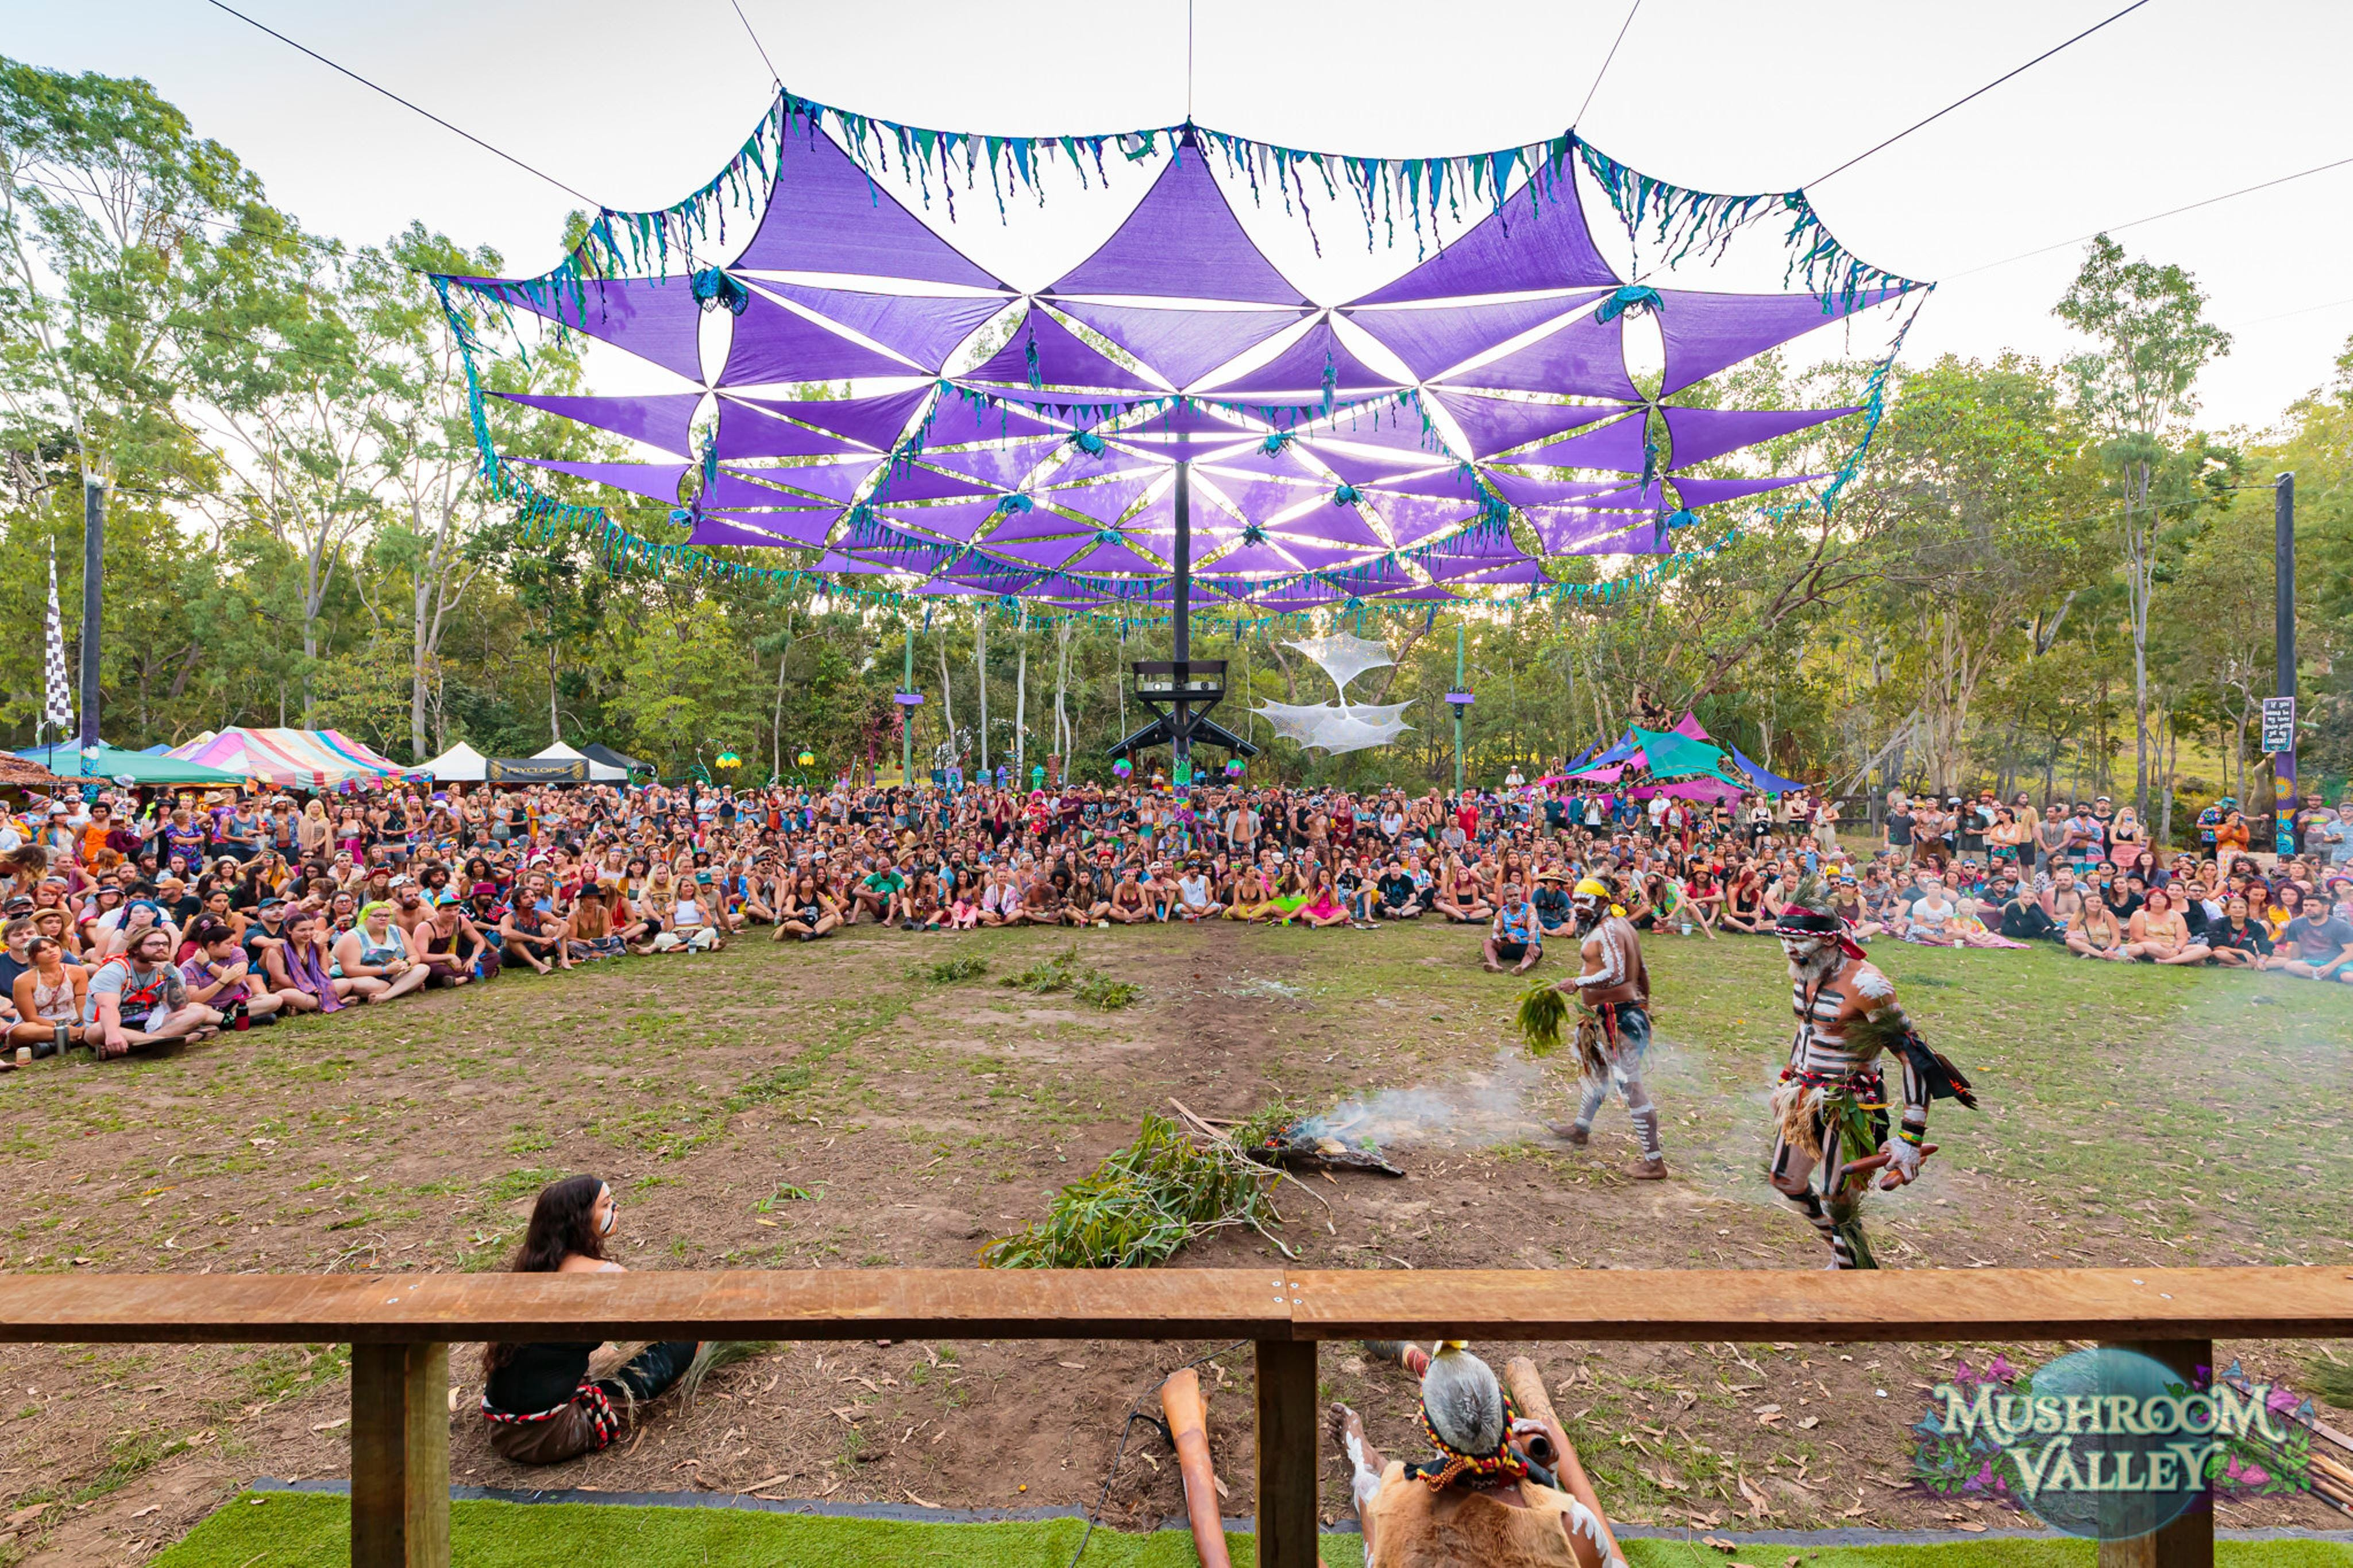 Mushroom Valley Festival - Accommodation NSW